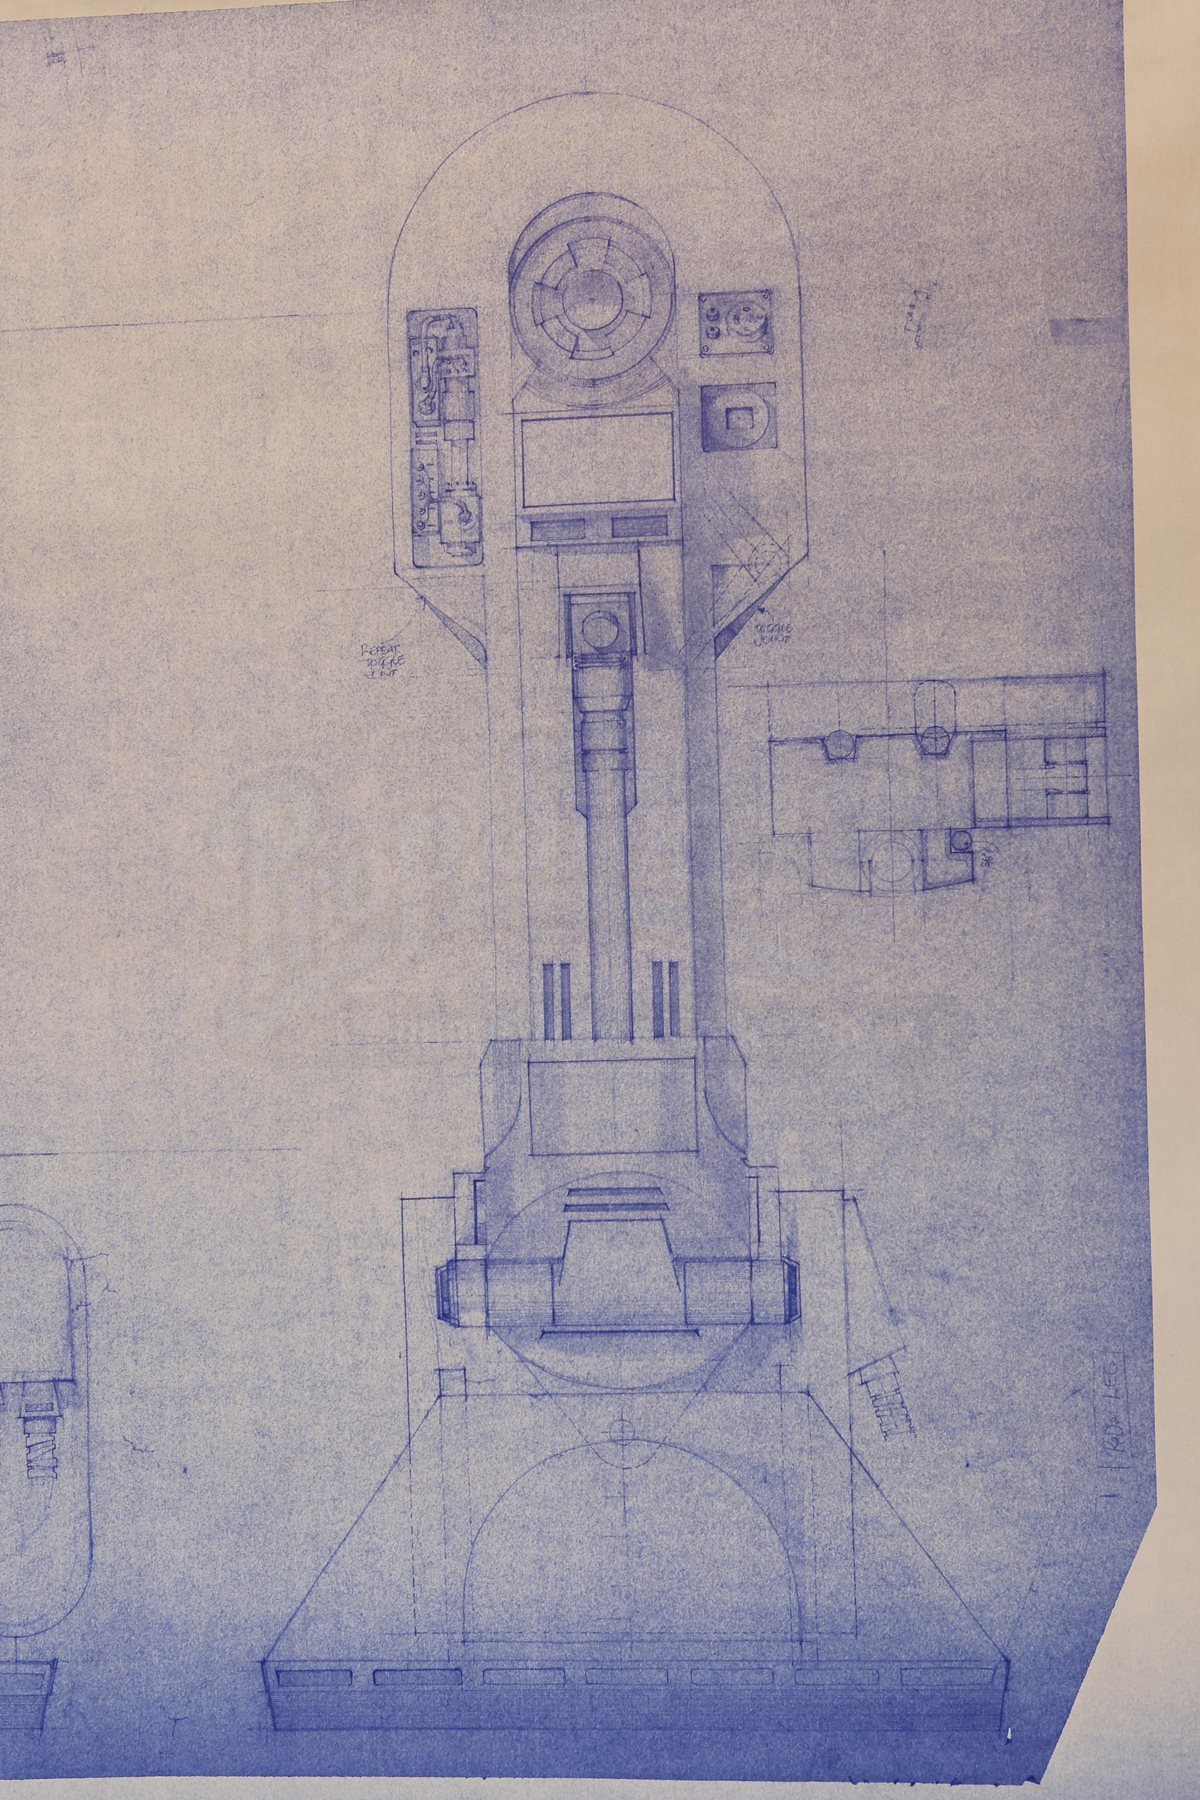 Star wars ep iv a new hope r2 d2 legs blueprint current price lot 31 malvernweather Image collections